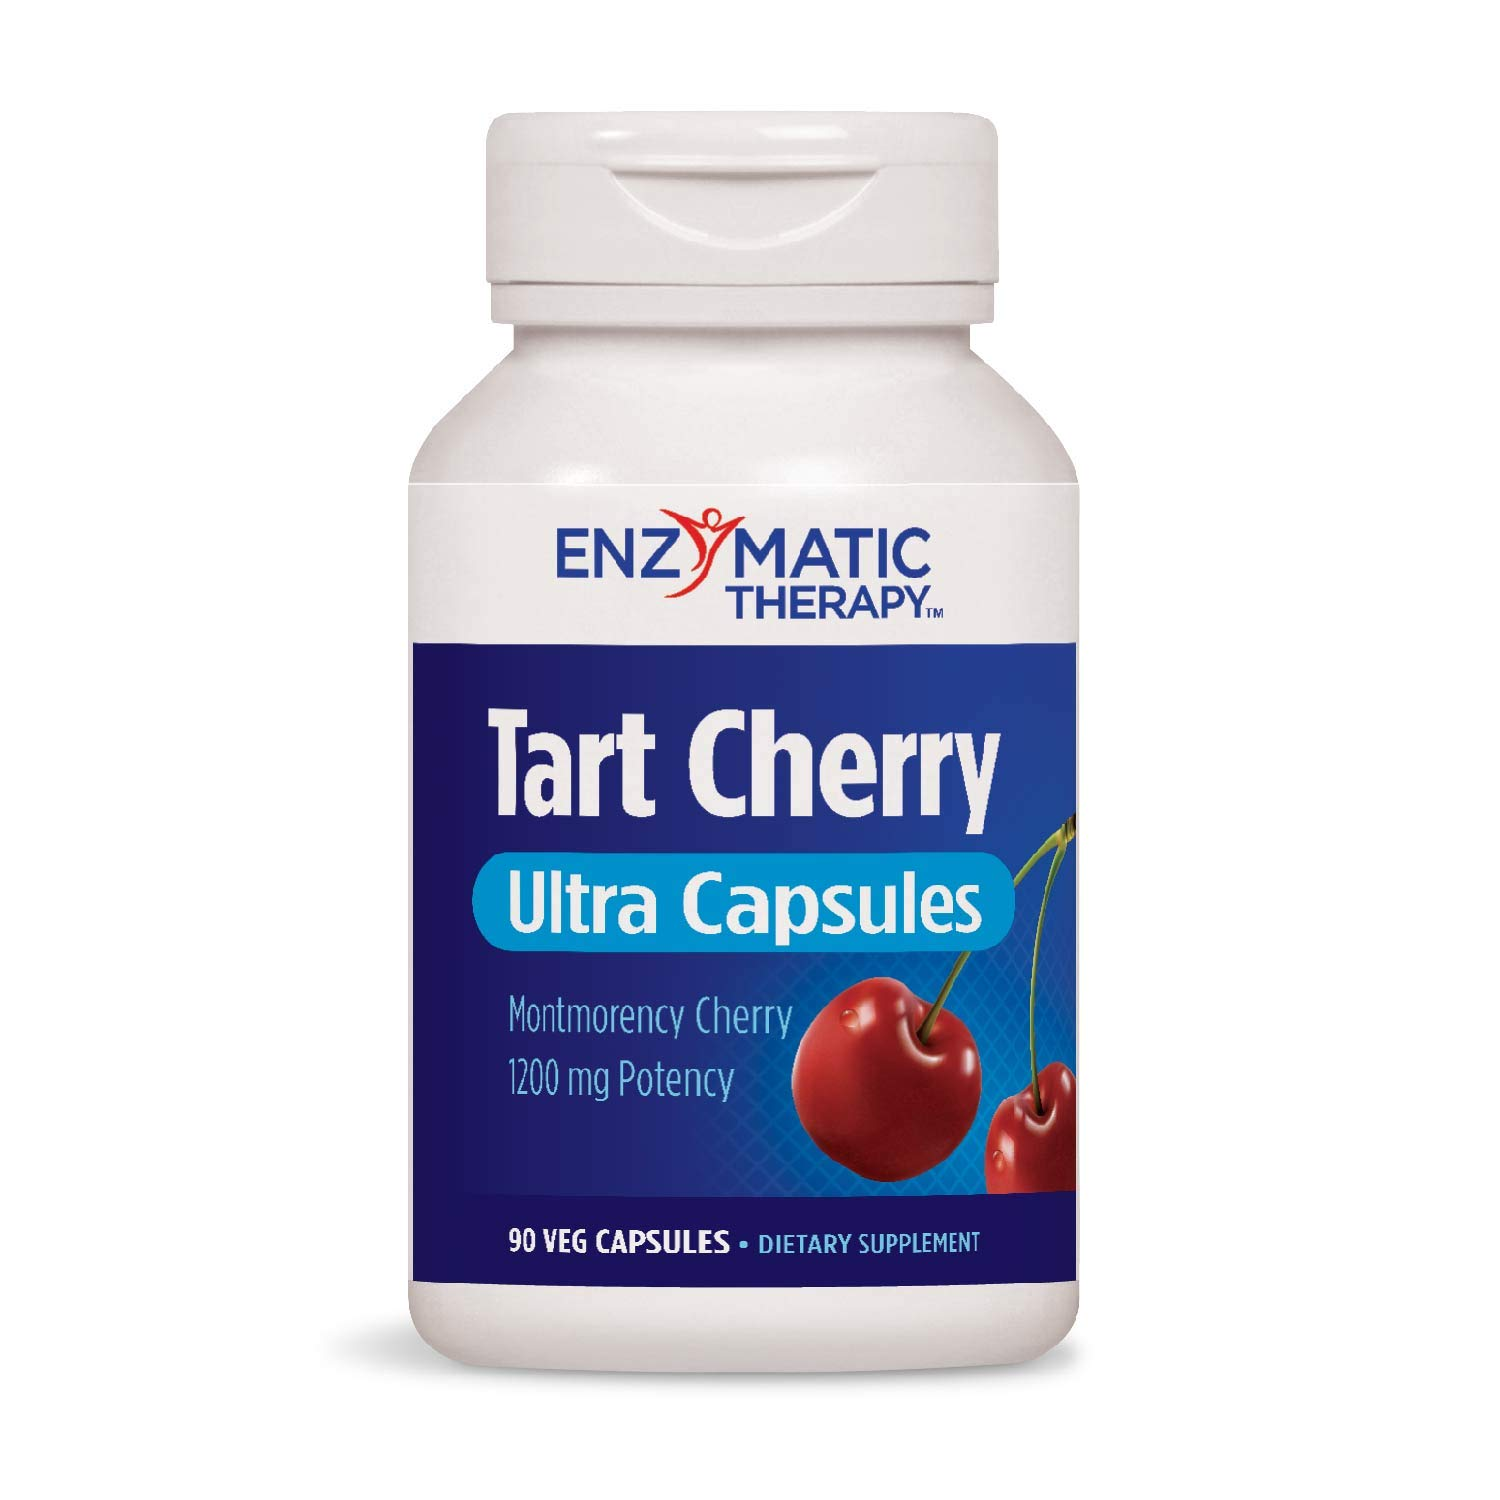 Enzymatic Therapy Tart Cherry Ultra Vegetarian Capsules, 90 Count by Enzymatic Therapy